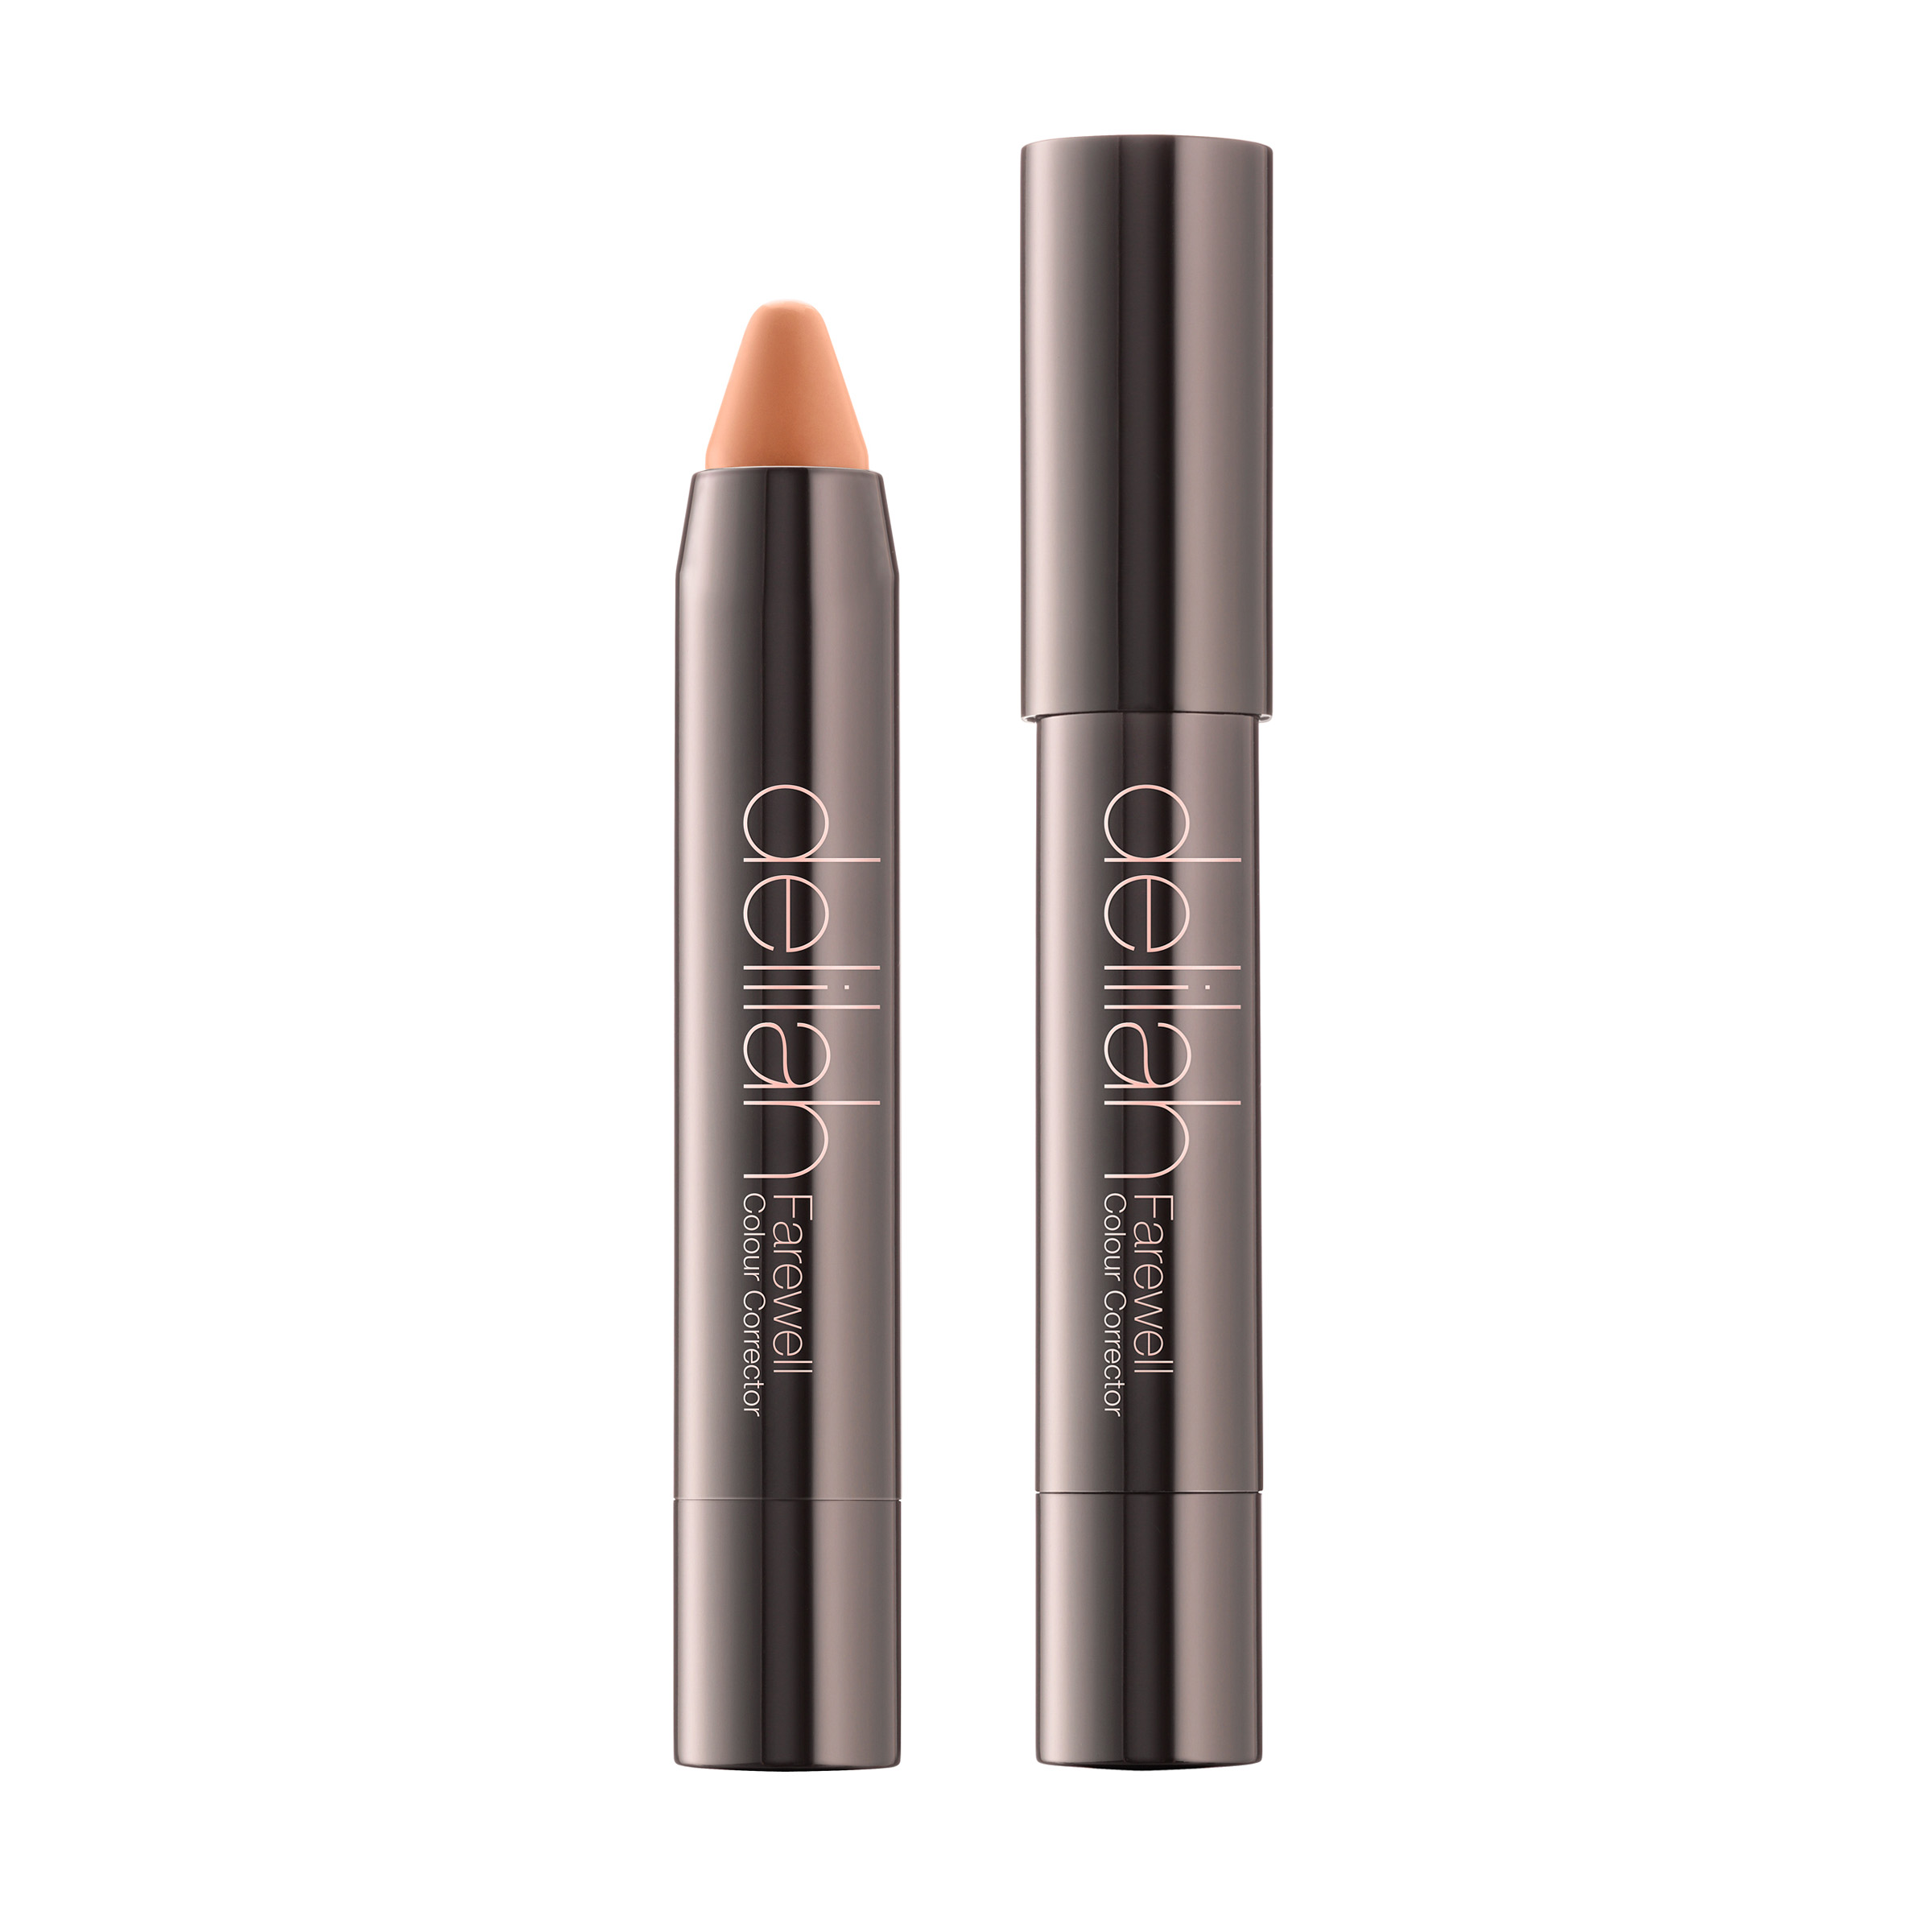 Farewell Colour Corrector - Apricot